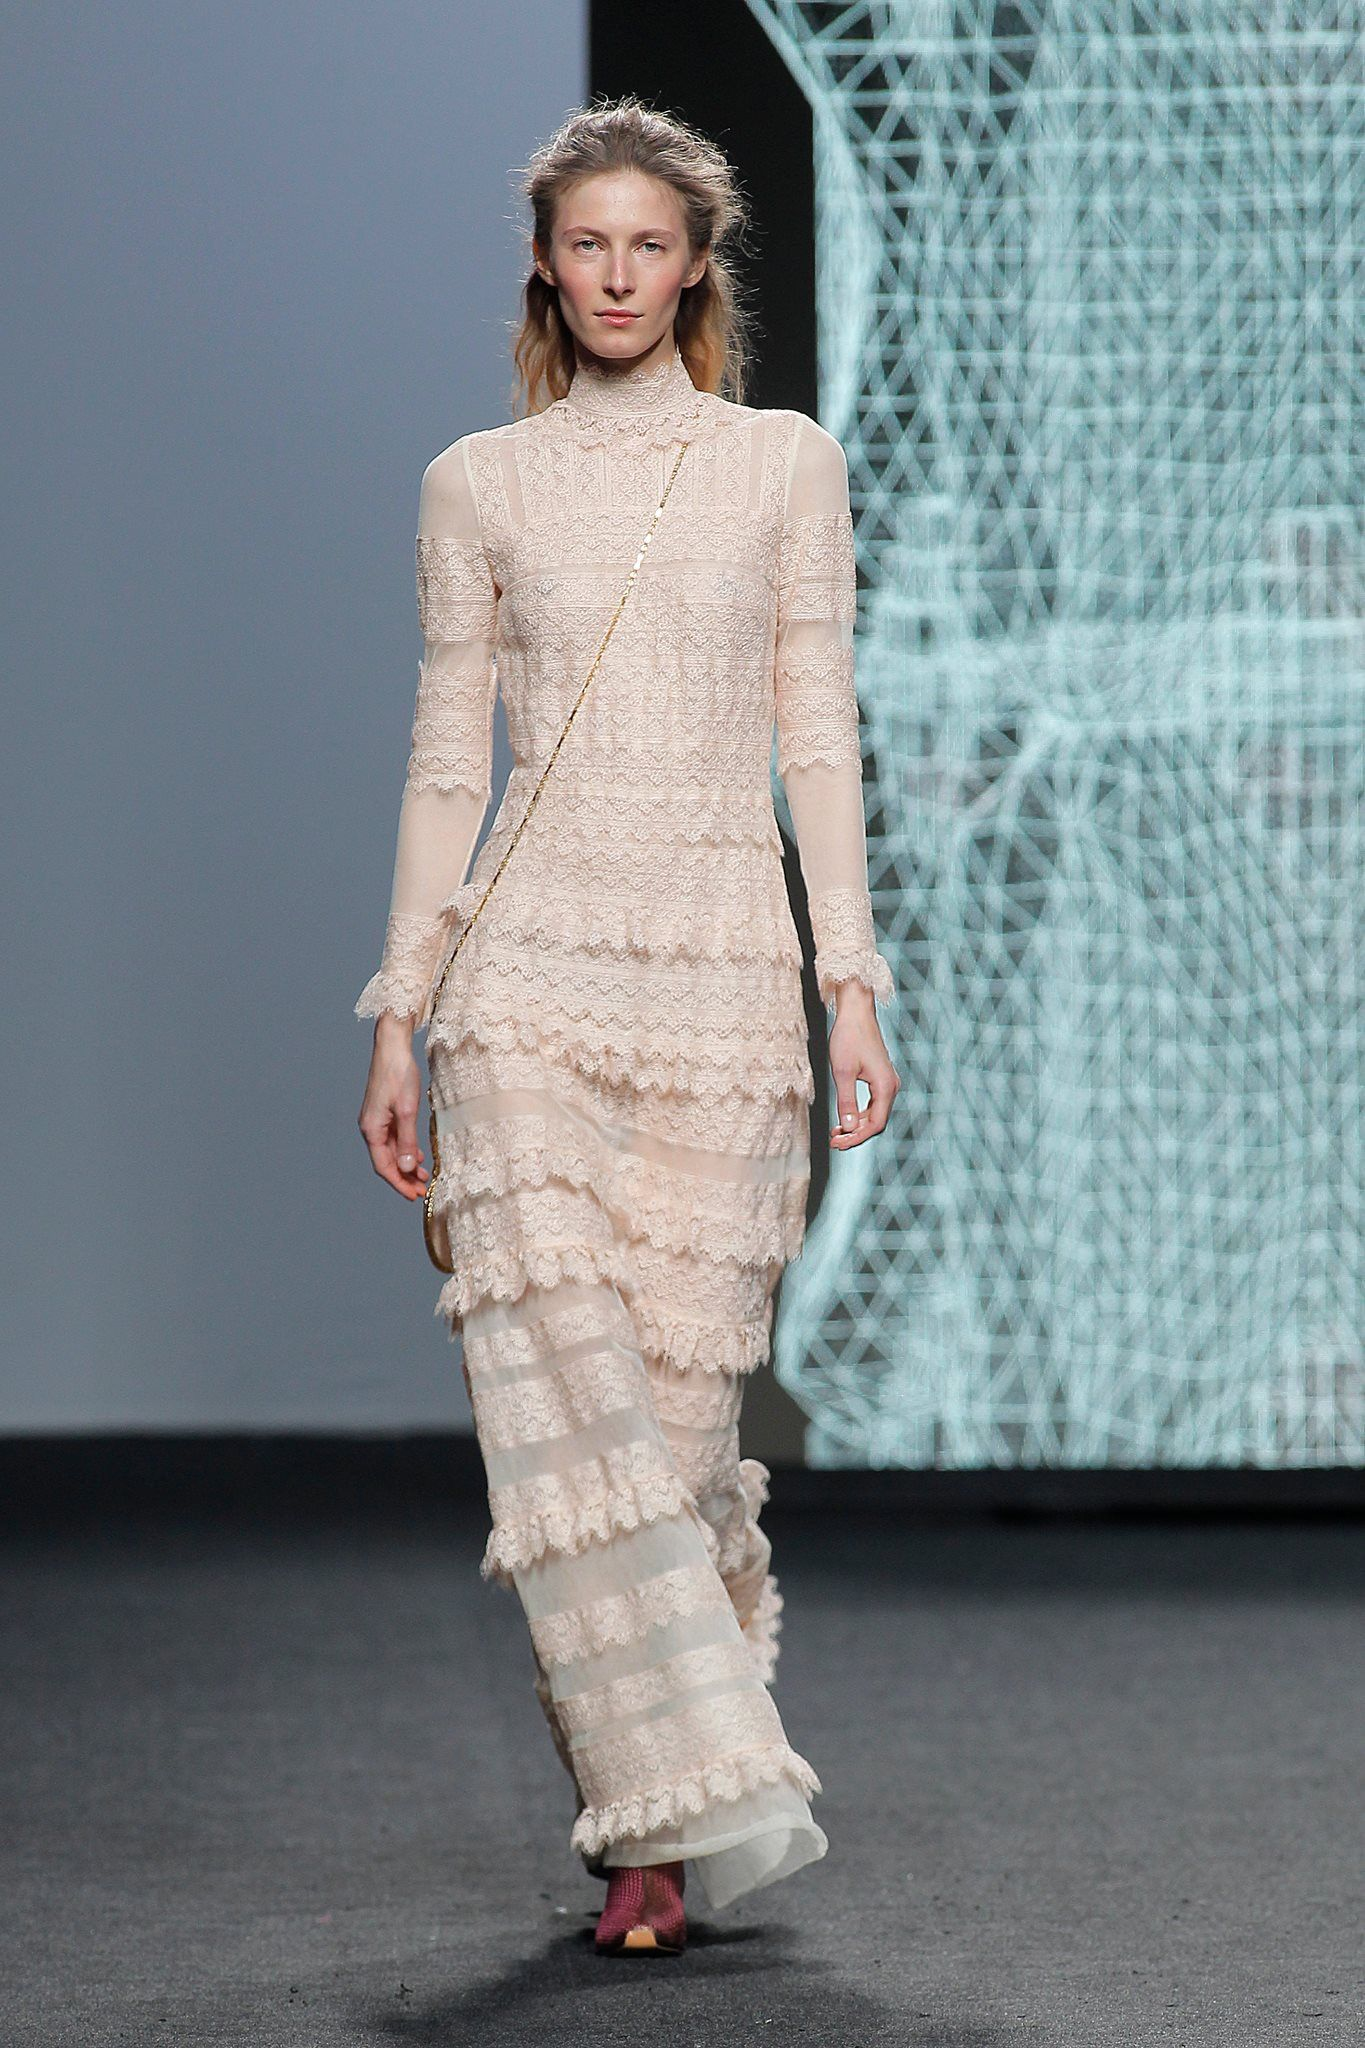 Pin by Ainhoa López Rico on A map of the clothes I loved: RUNWAY ...